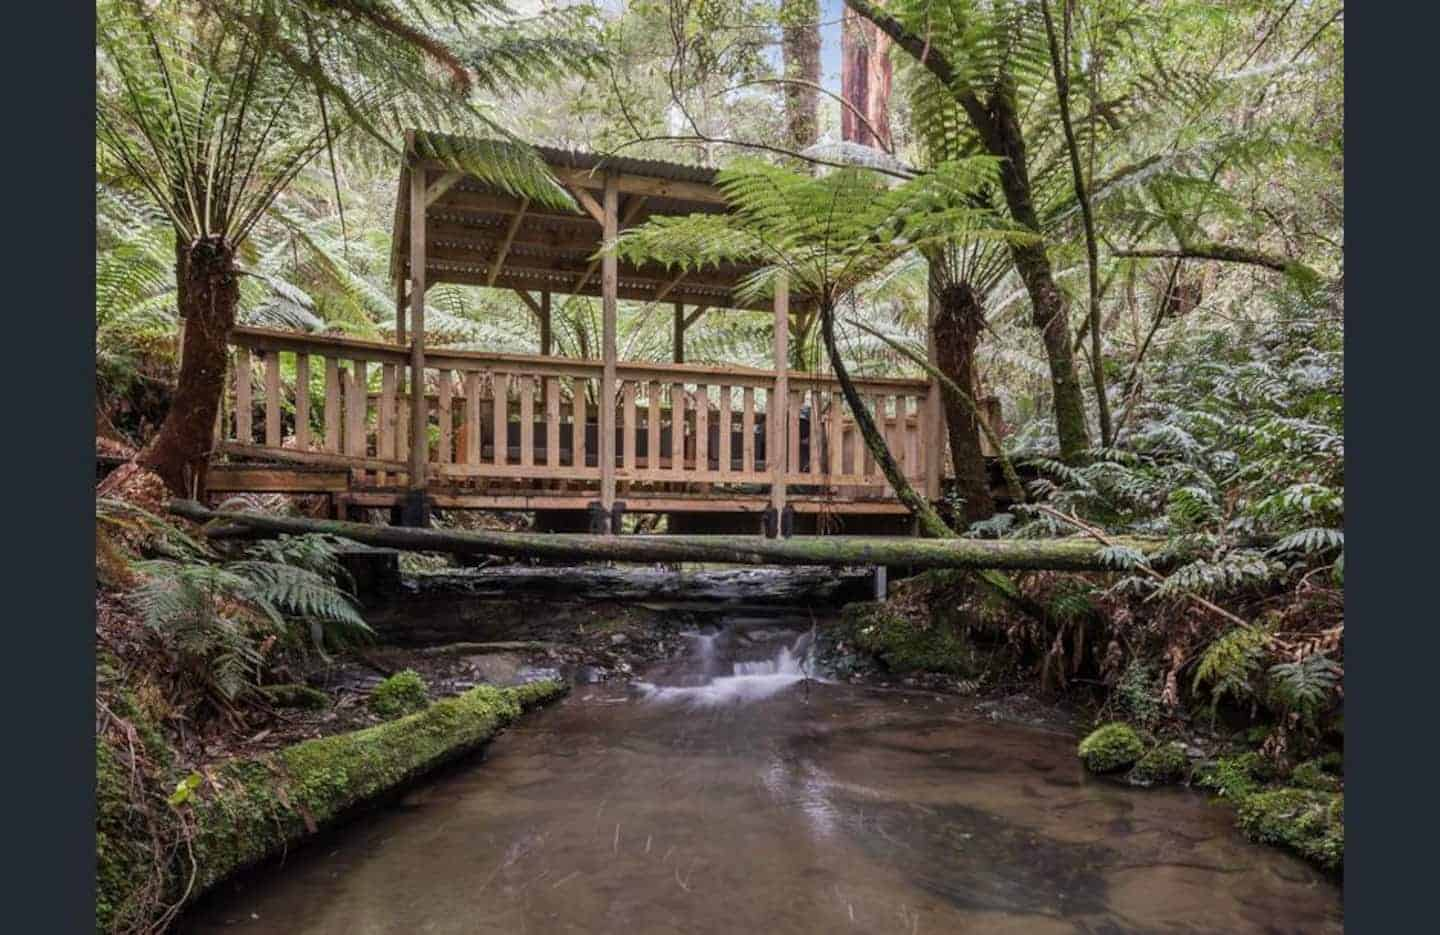 Rainforest with a wooden bridge crossing a stream